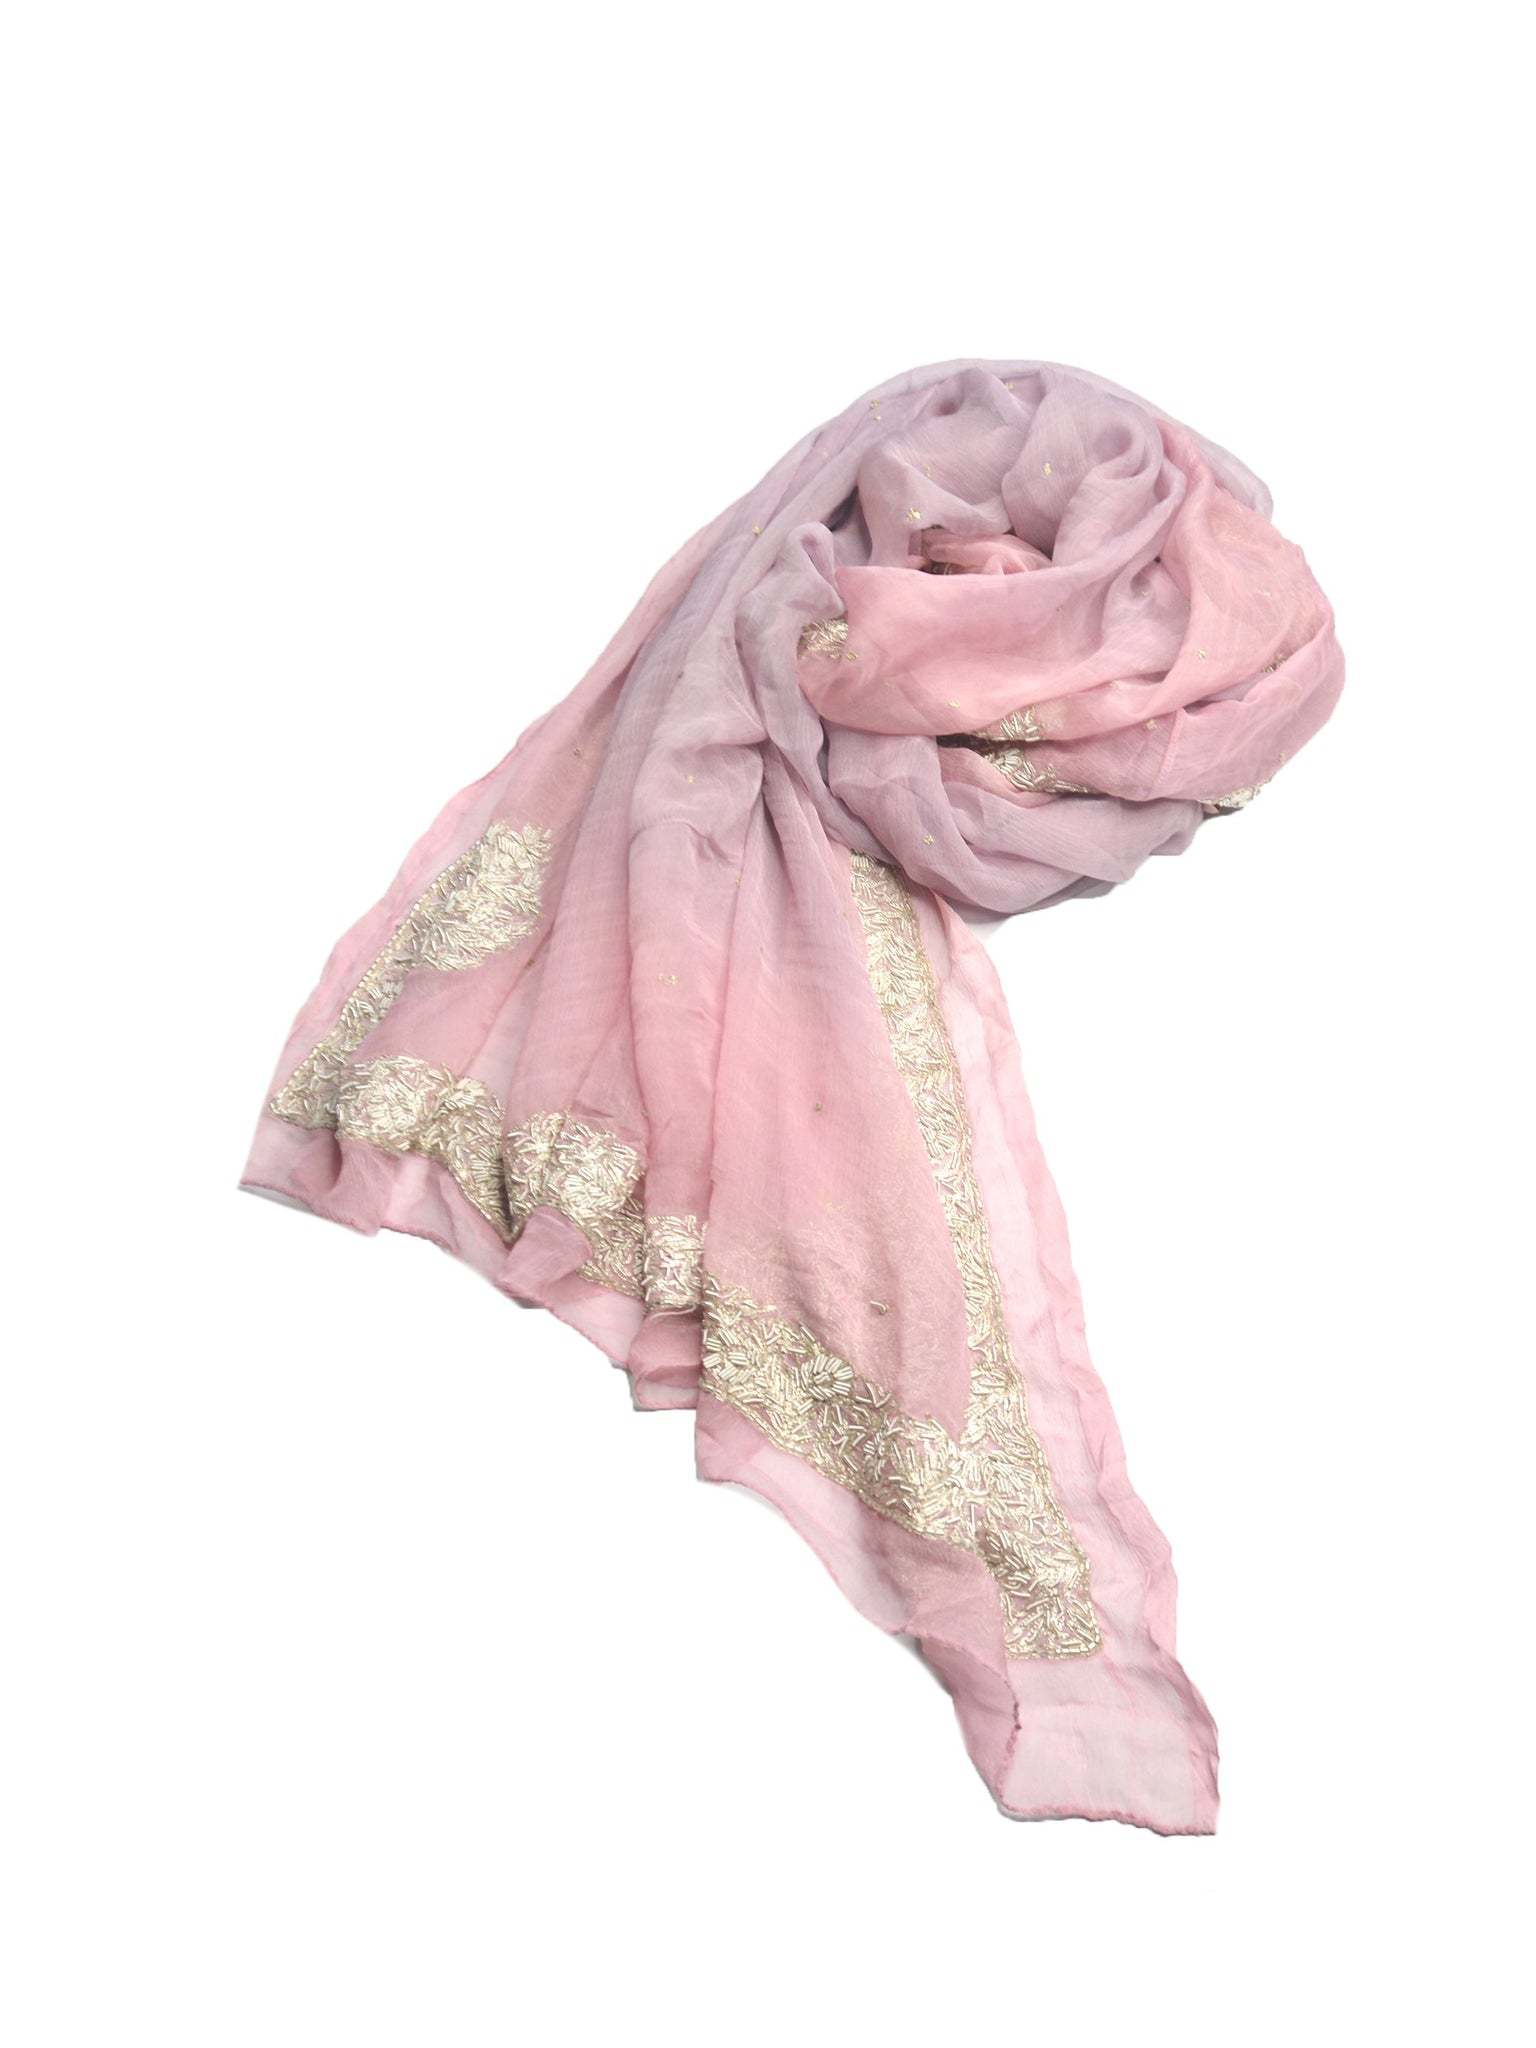 beautiful, soft pure silk chiffon wedding wrap in pink and light purple